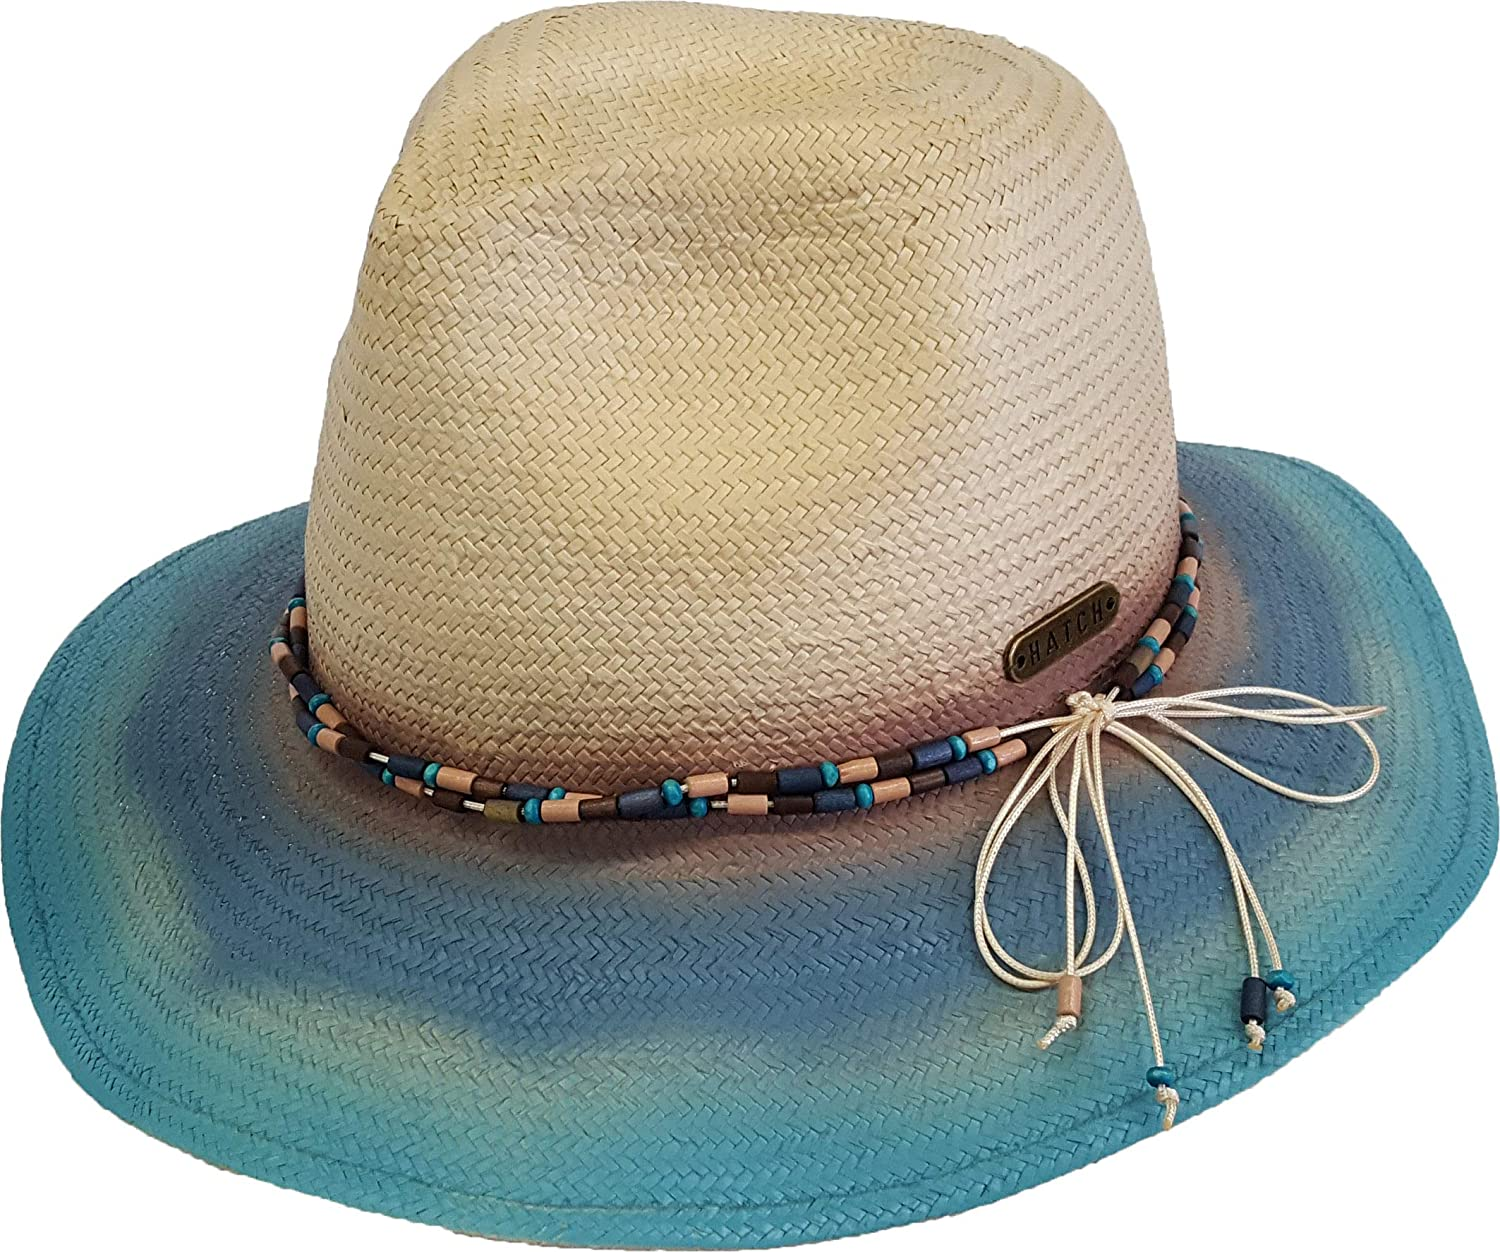 Women s Hand Painted Straw Cowboy Hat with Western Style Belting  (Natural Blue) at Amazon Women s Clothing store  7ef4f605990